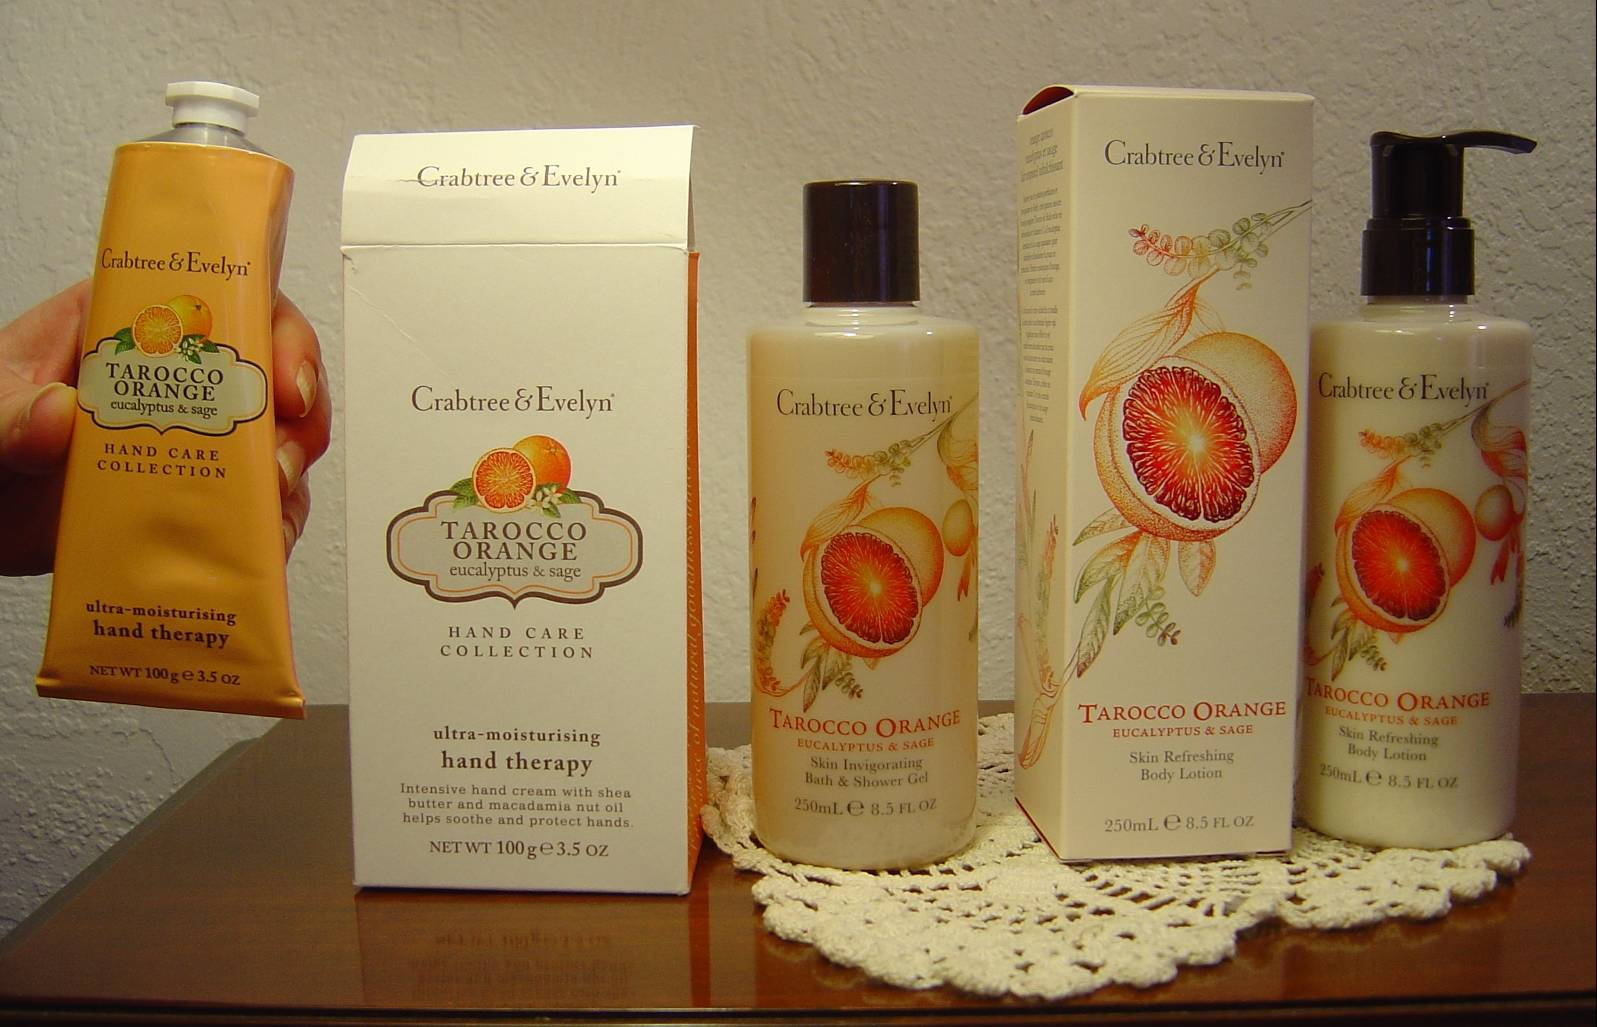 Crabtree & Evelyn's  NEW Tarocco Orange, Eucalyptus & Sage Hand Creme, Body Lotion, and Bath Gel.jpeg